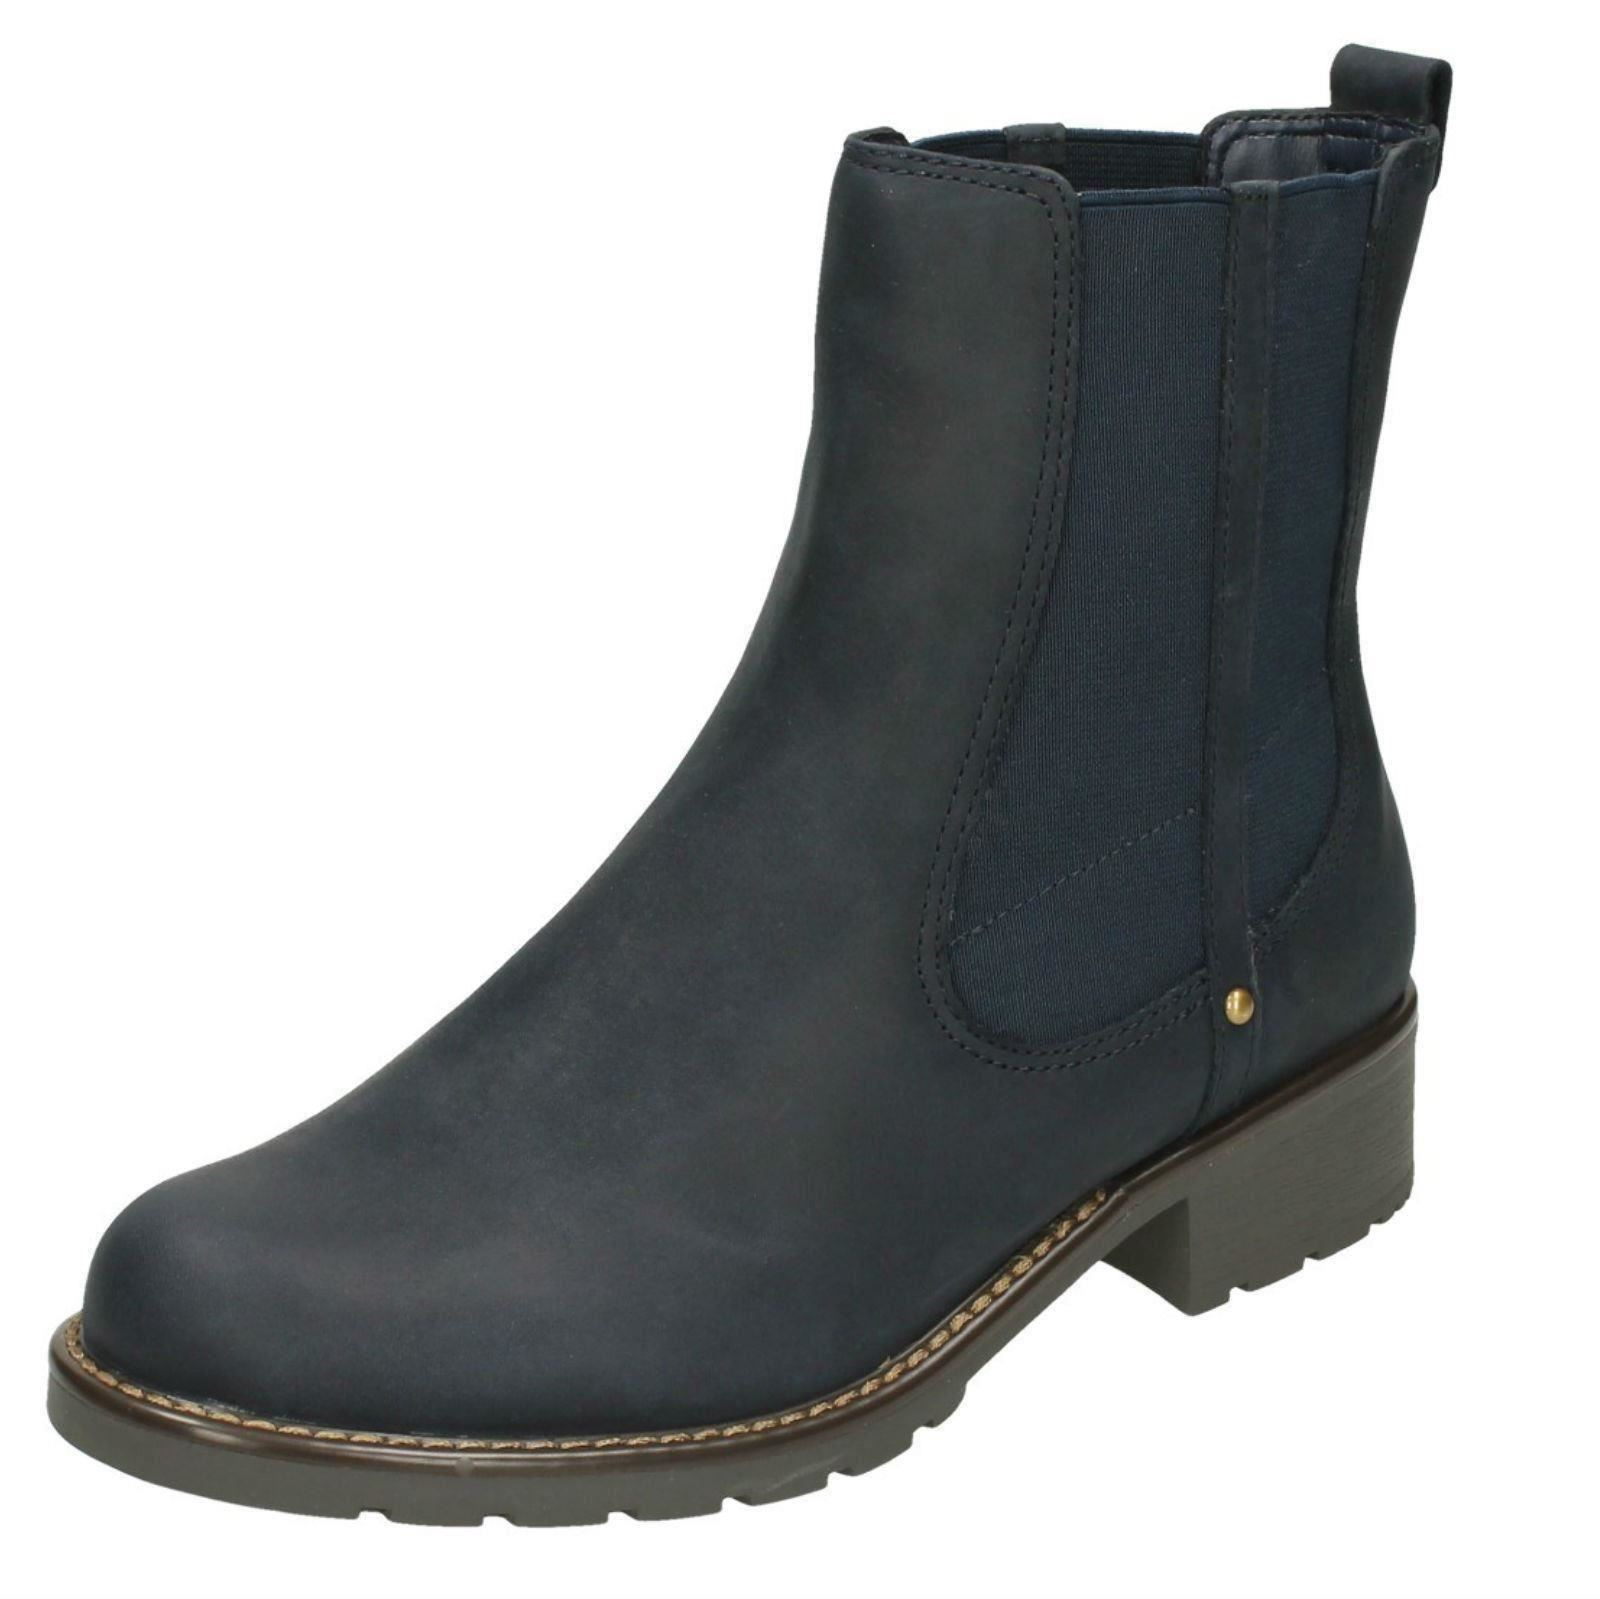 664bcfd10a3ca Ladies Clarks Orinoco Club Chelsea Pull on BOOTS Navy (blue) UK 5.5 D.  About this product. Picture 1 of 10; Picture 2 of 10 ...